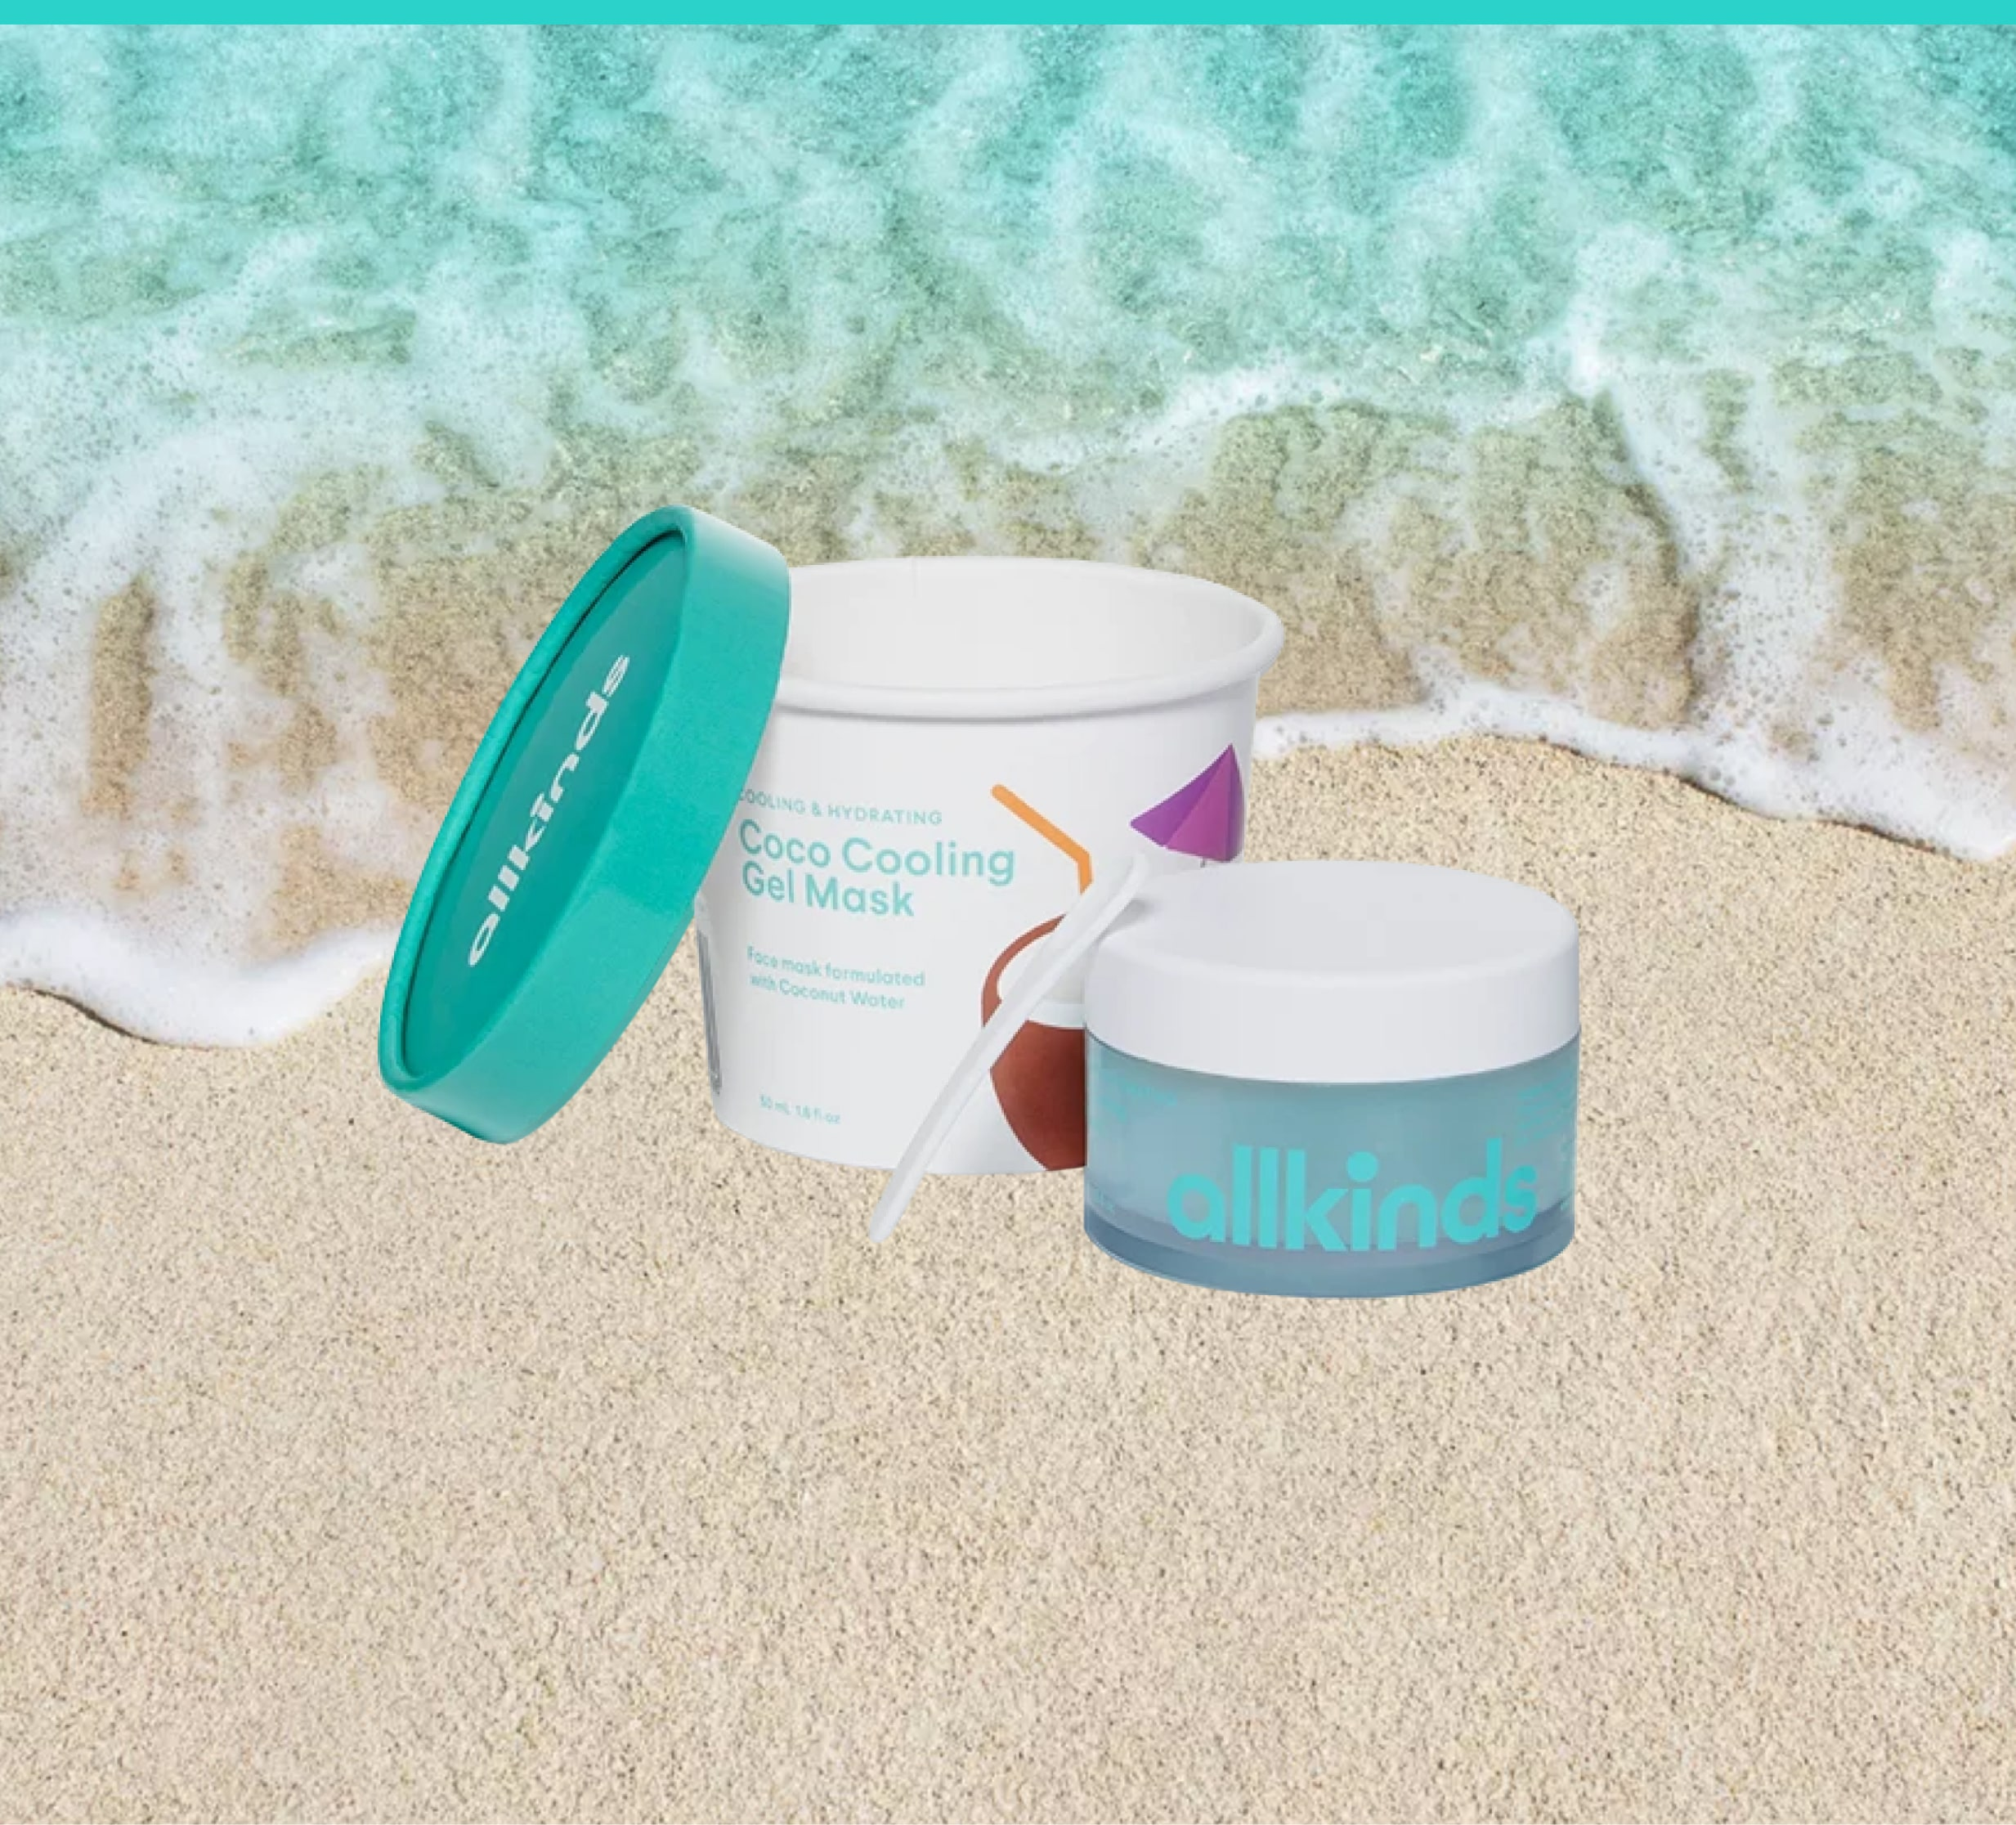 Allkinds' Hey Vacay Coco Cooling Gel Mask packaging with wave and sand background